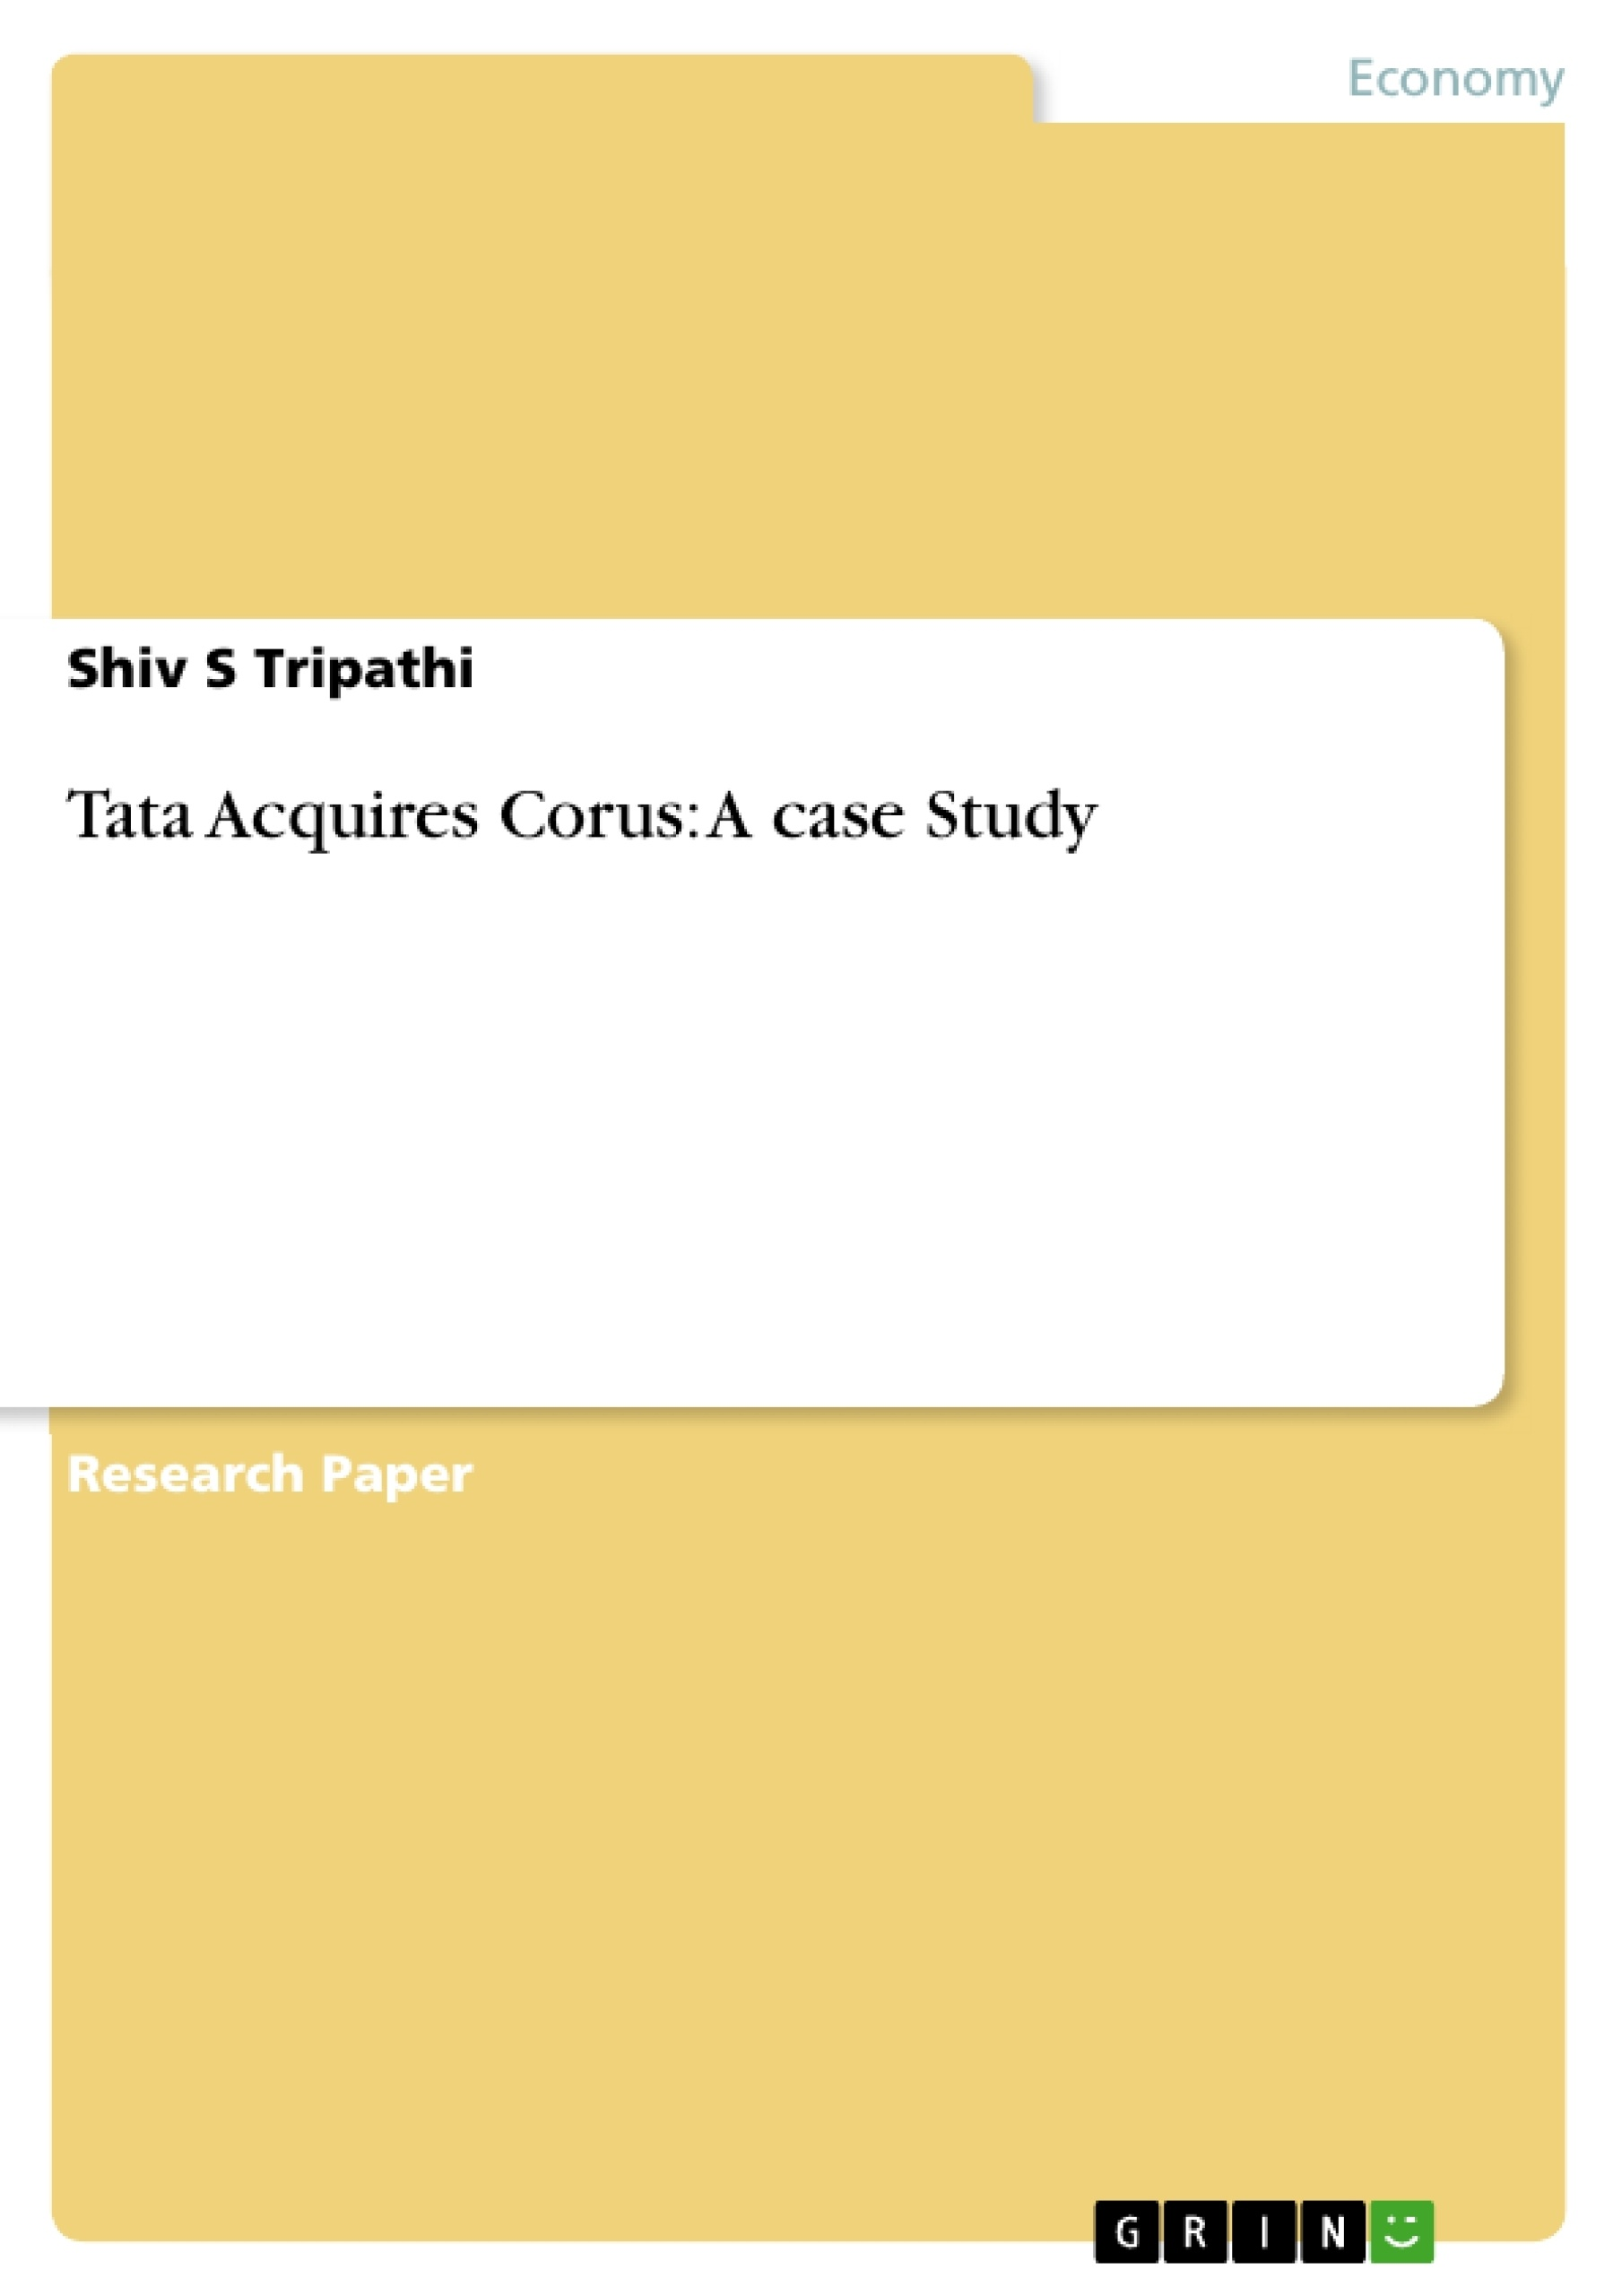 tata acquires corus a case study publish your master s thesis tata acquires corus a case study publish your master s thesis bachelor s thesis essay or term paper